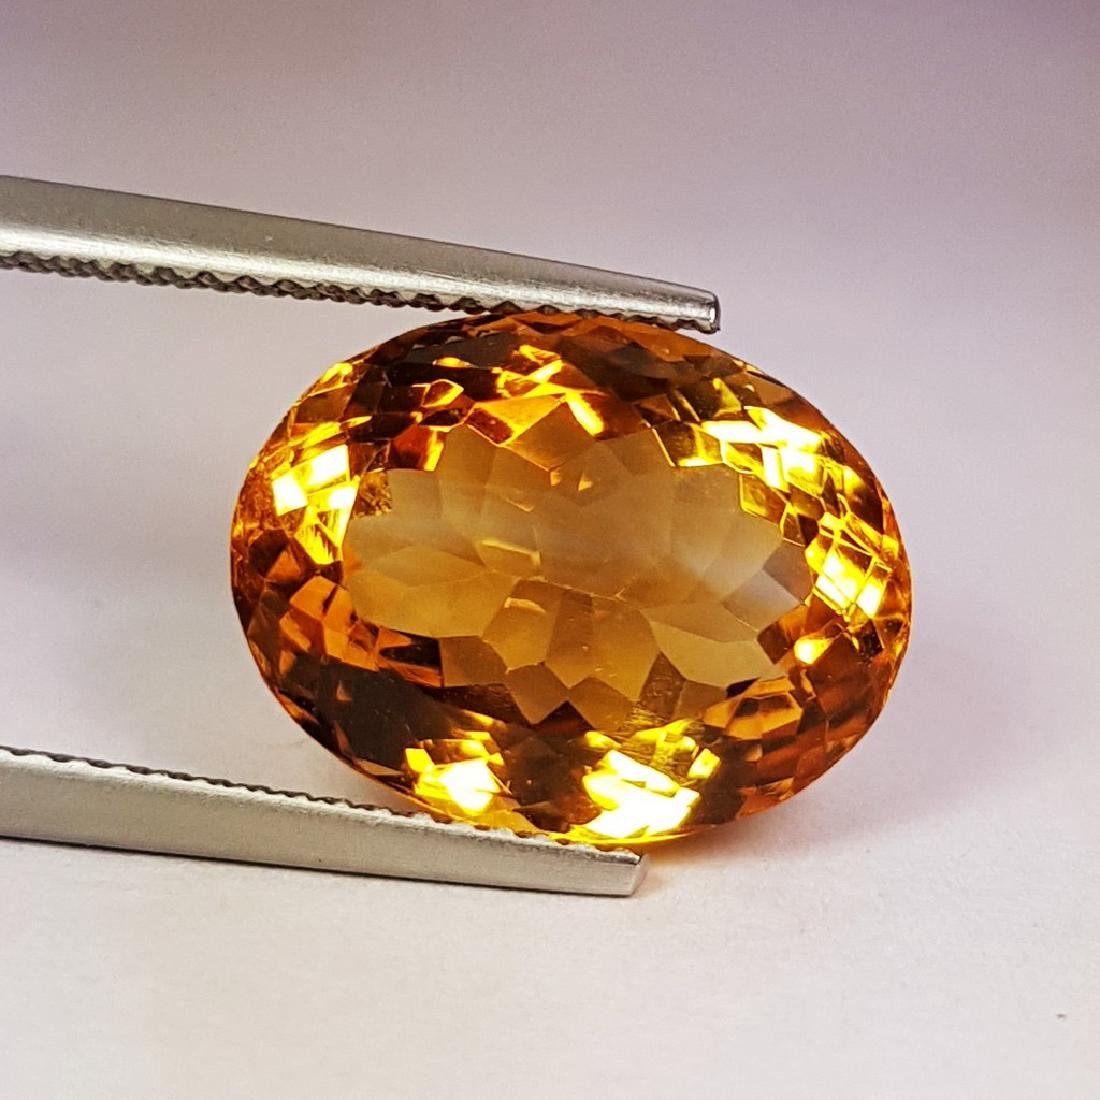 Marvelous Oval Cut Natural Citrine - 7.84 ct - 3